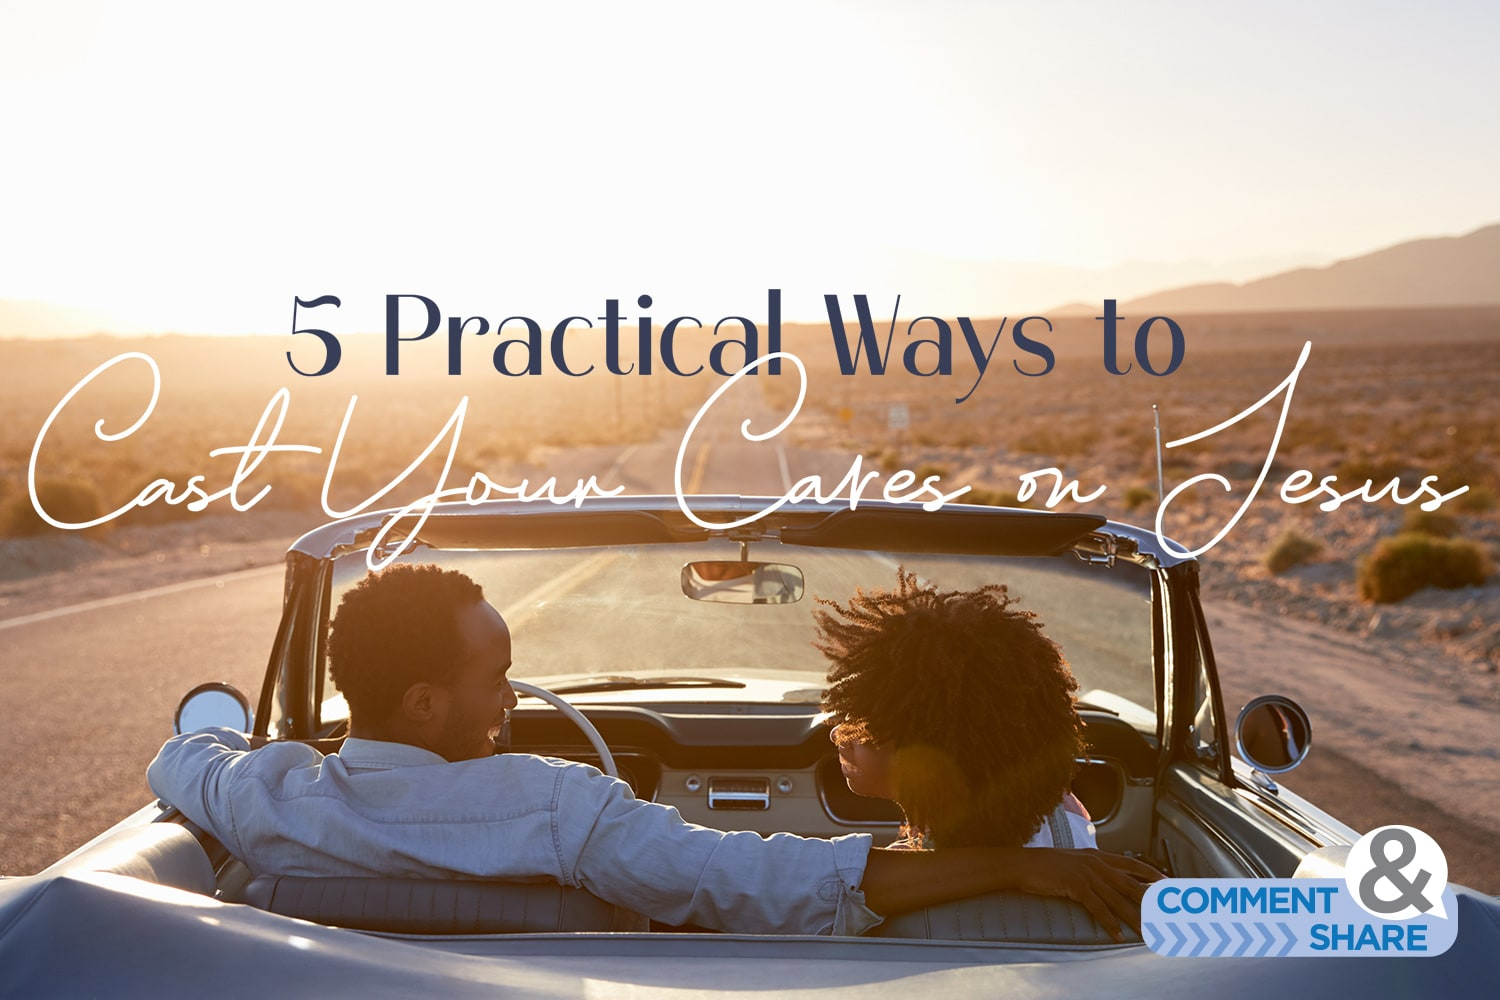 5 Practical Ways to Cast Your Cares on Jesus